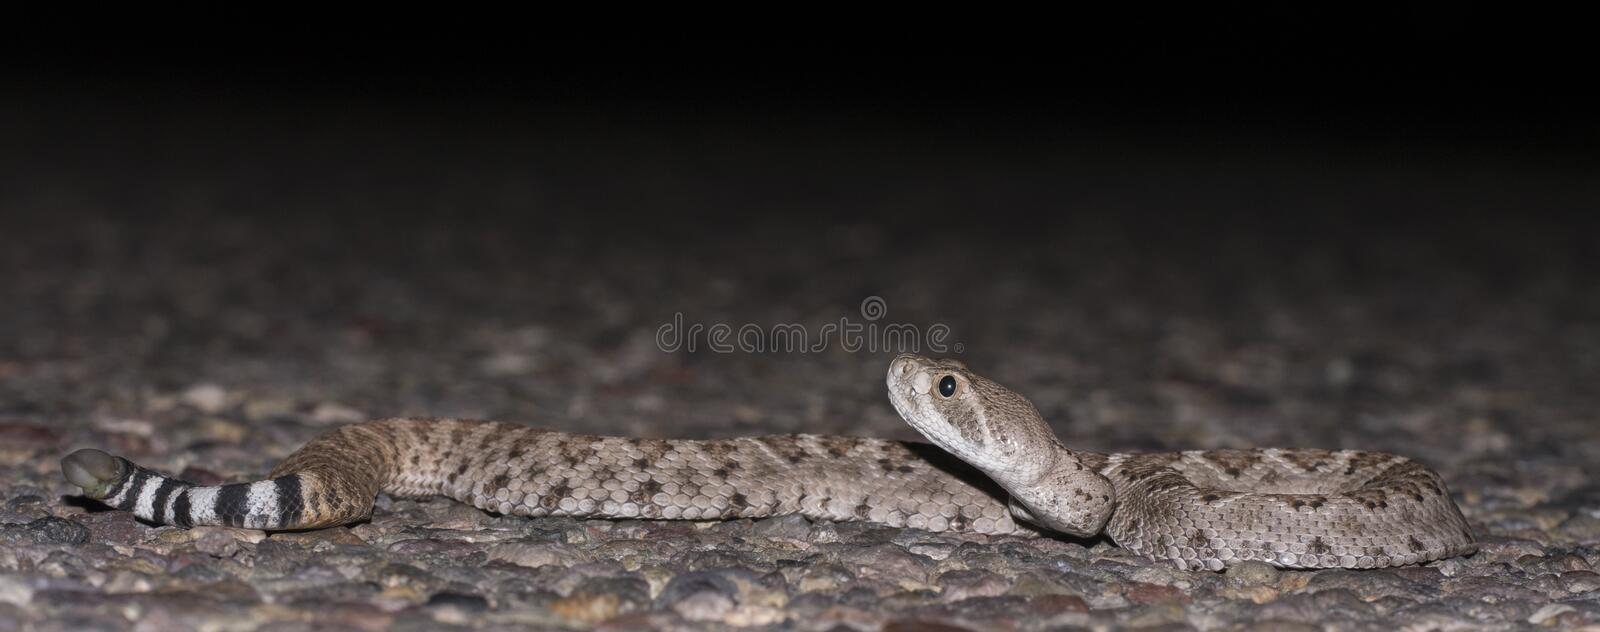 Rattlesnake stock photography